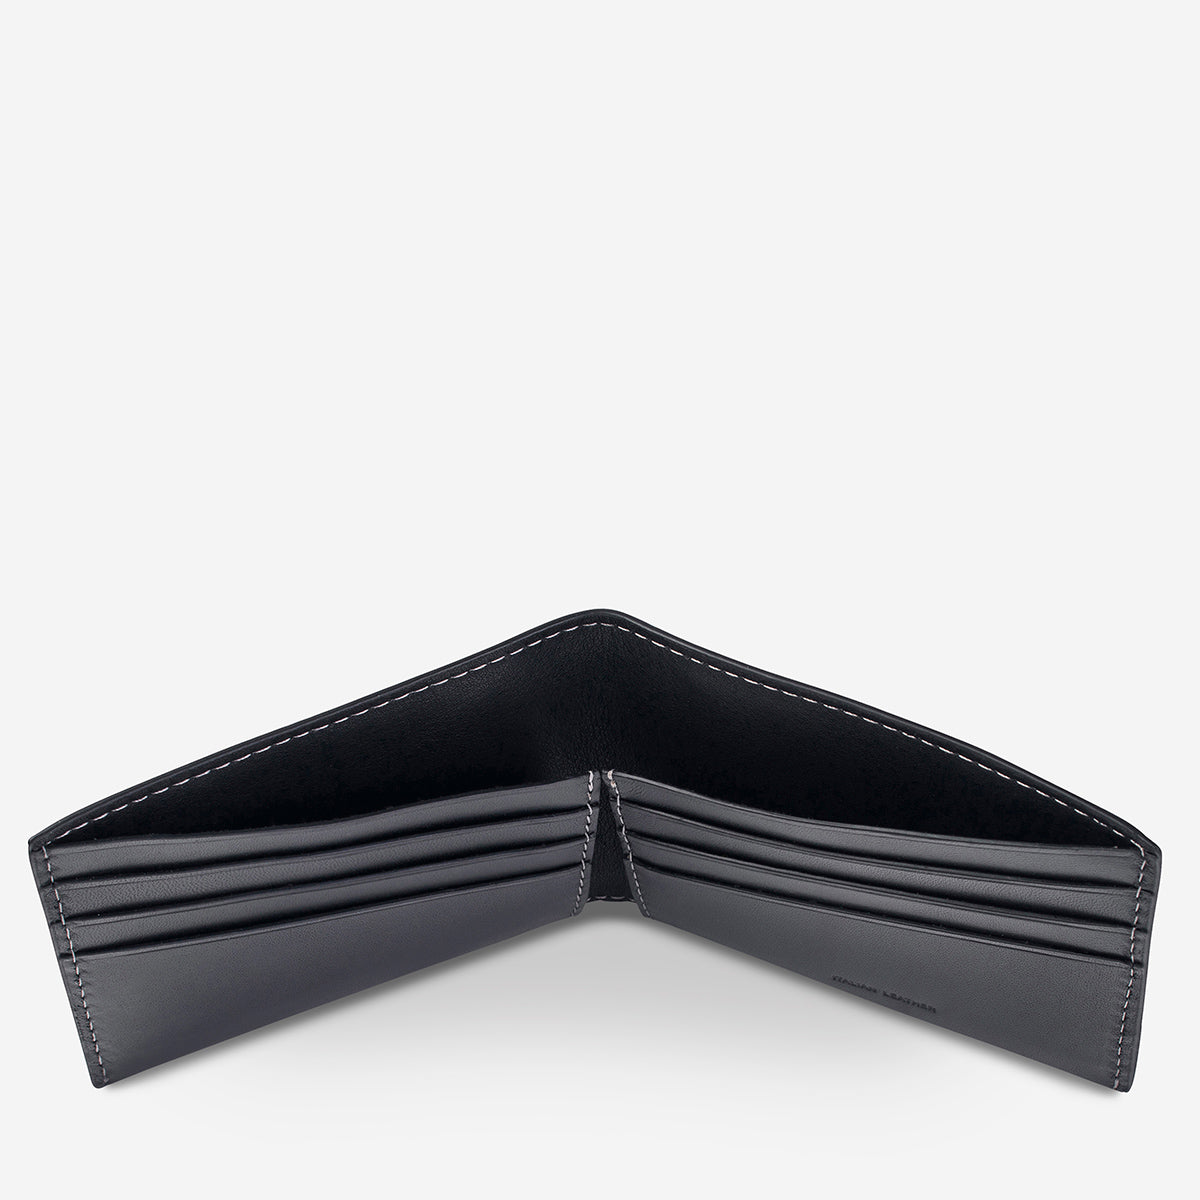 Status Anxiety Felix Bi-Fold Wallet - Black